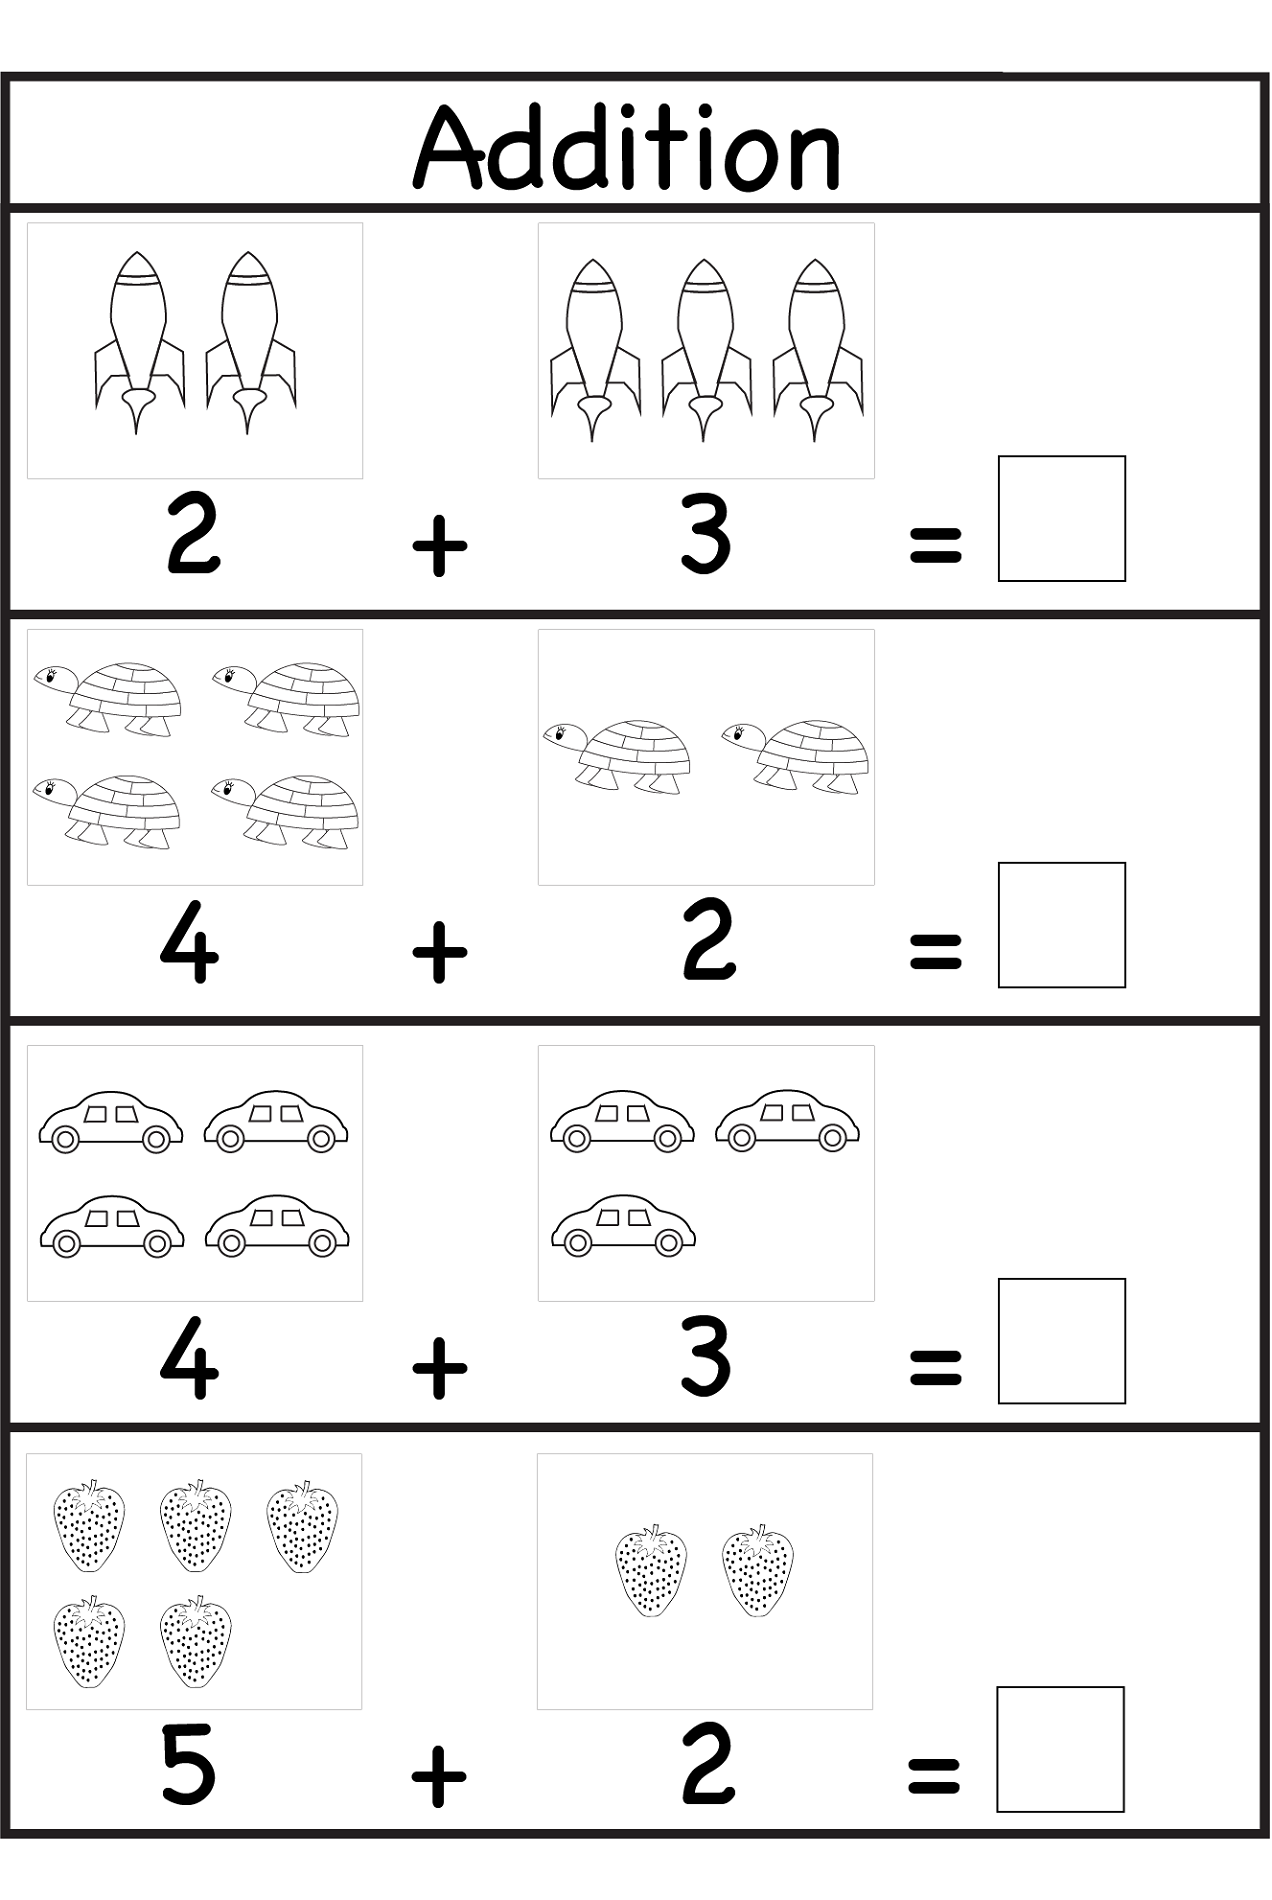 Printable Fun Sheets for Math | Activity Shelter